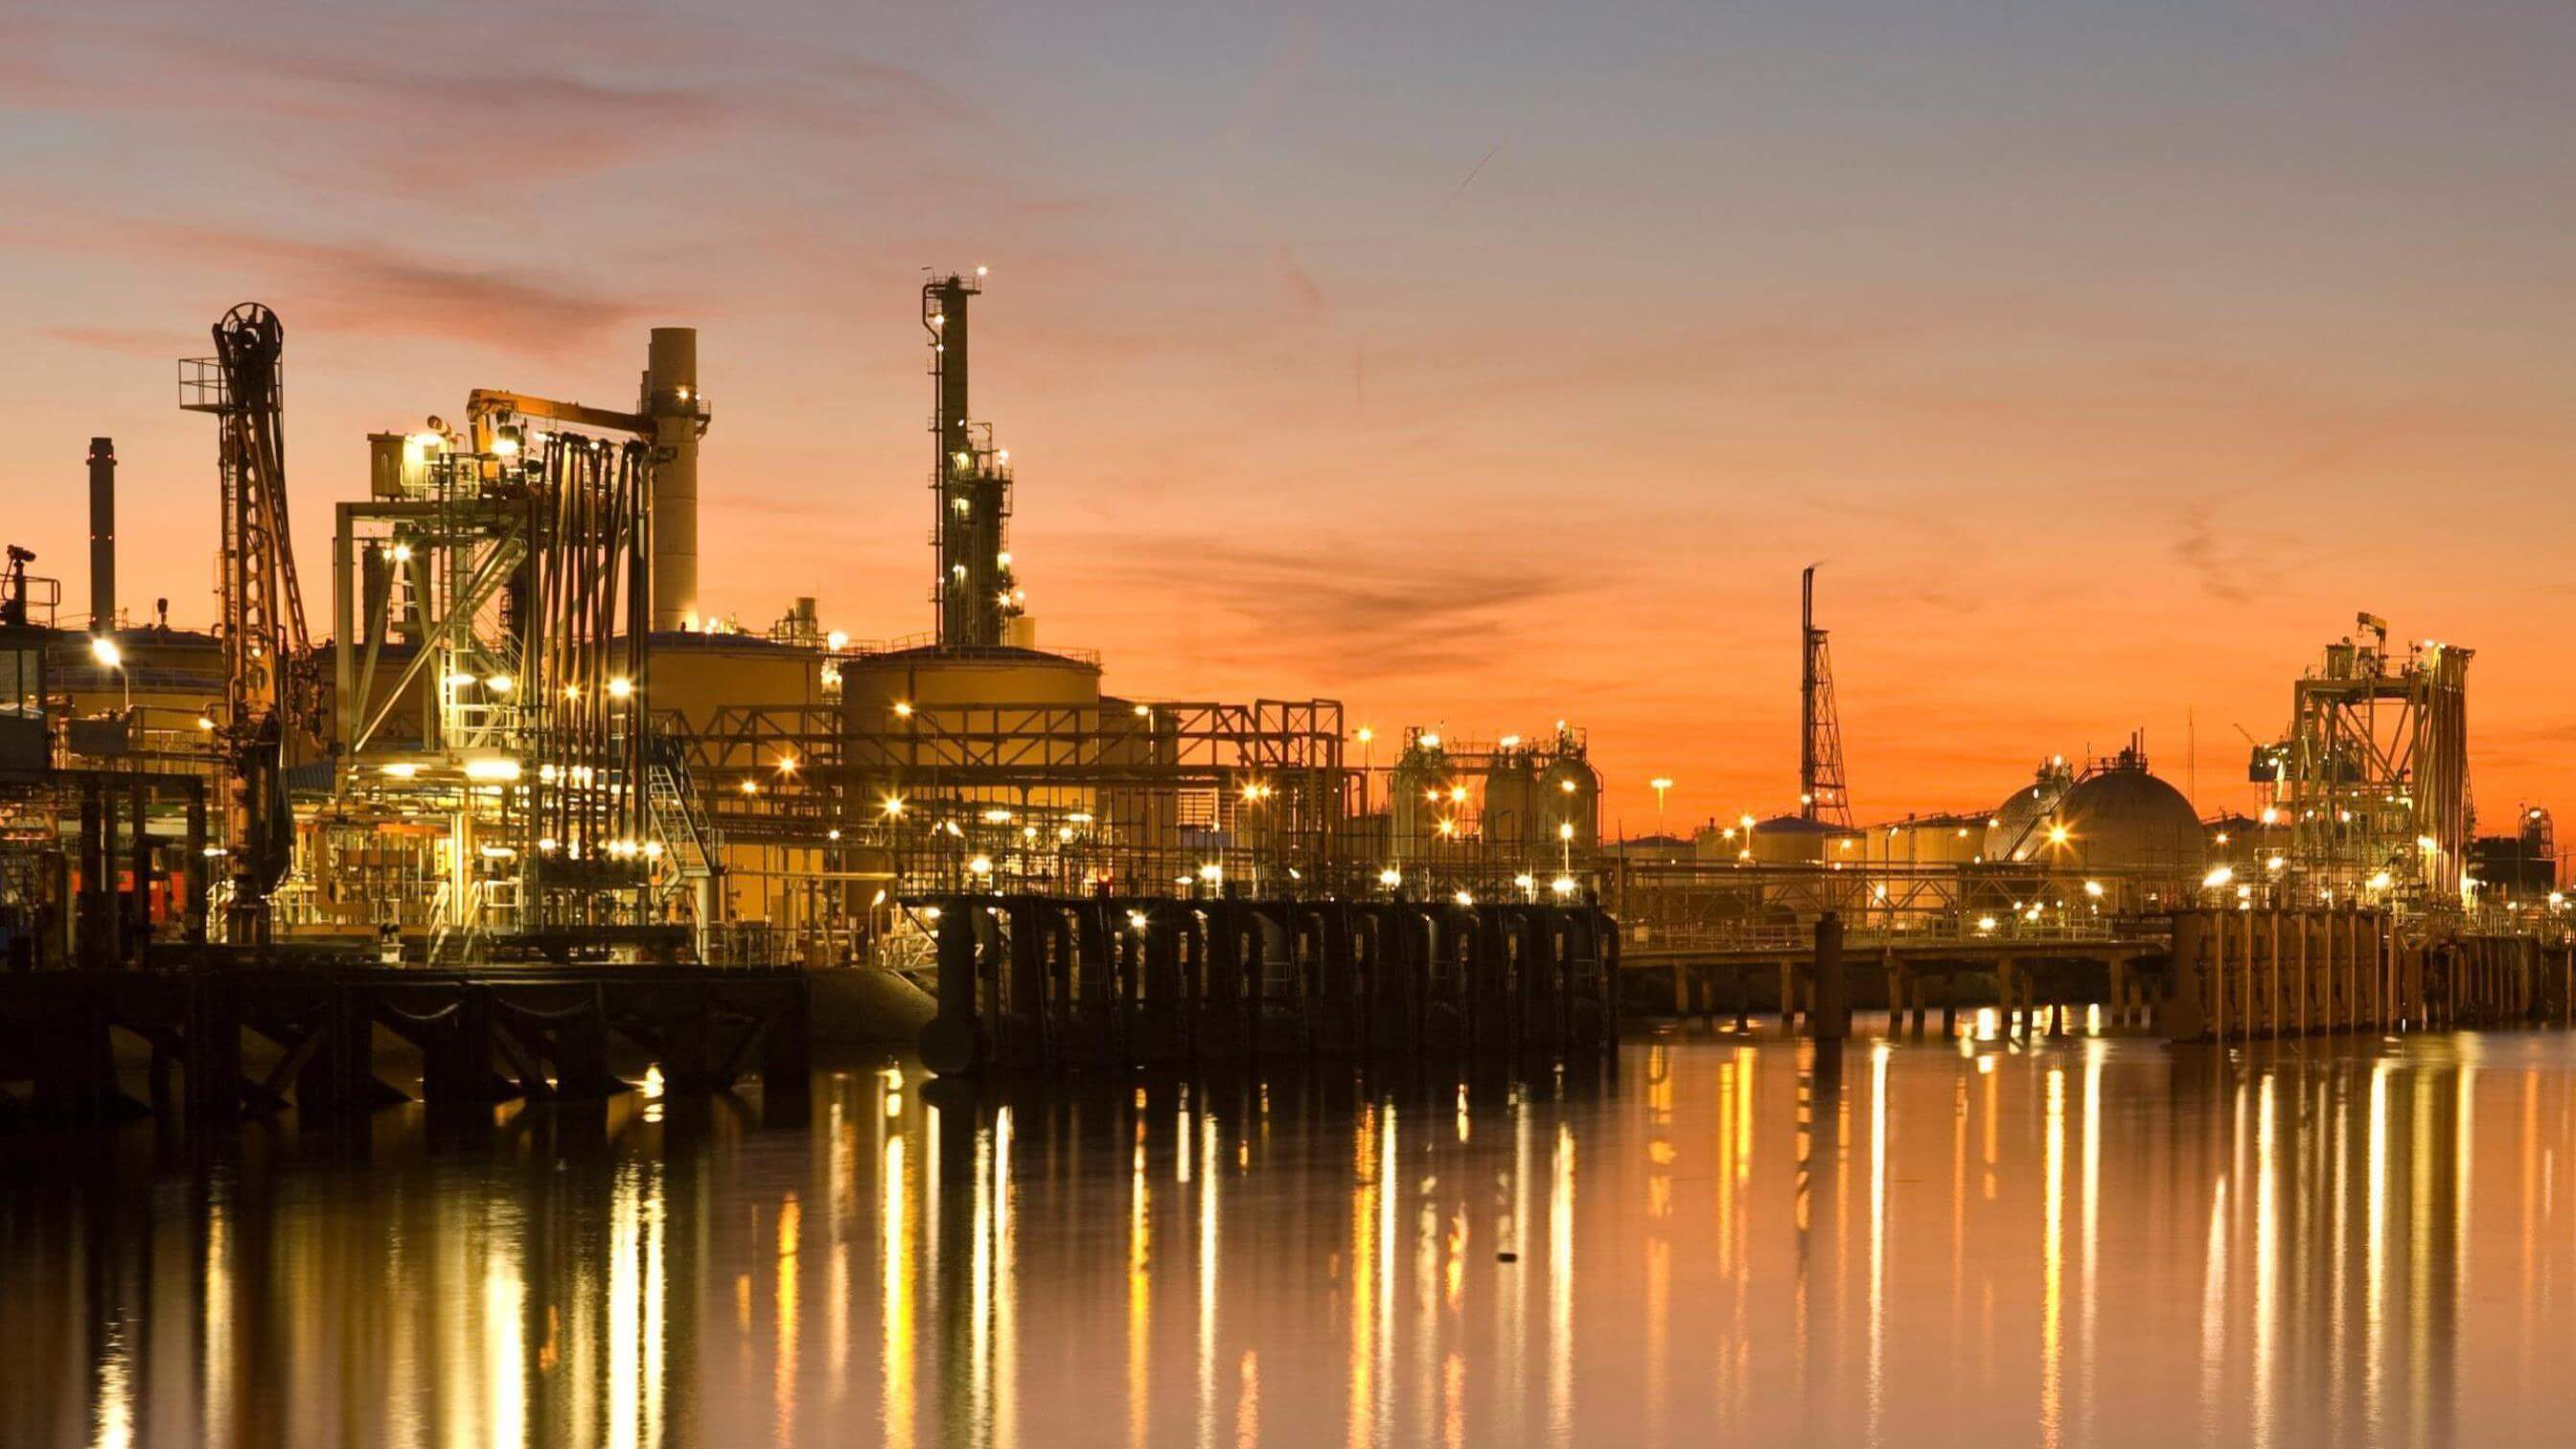 refinery plant sunset